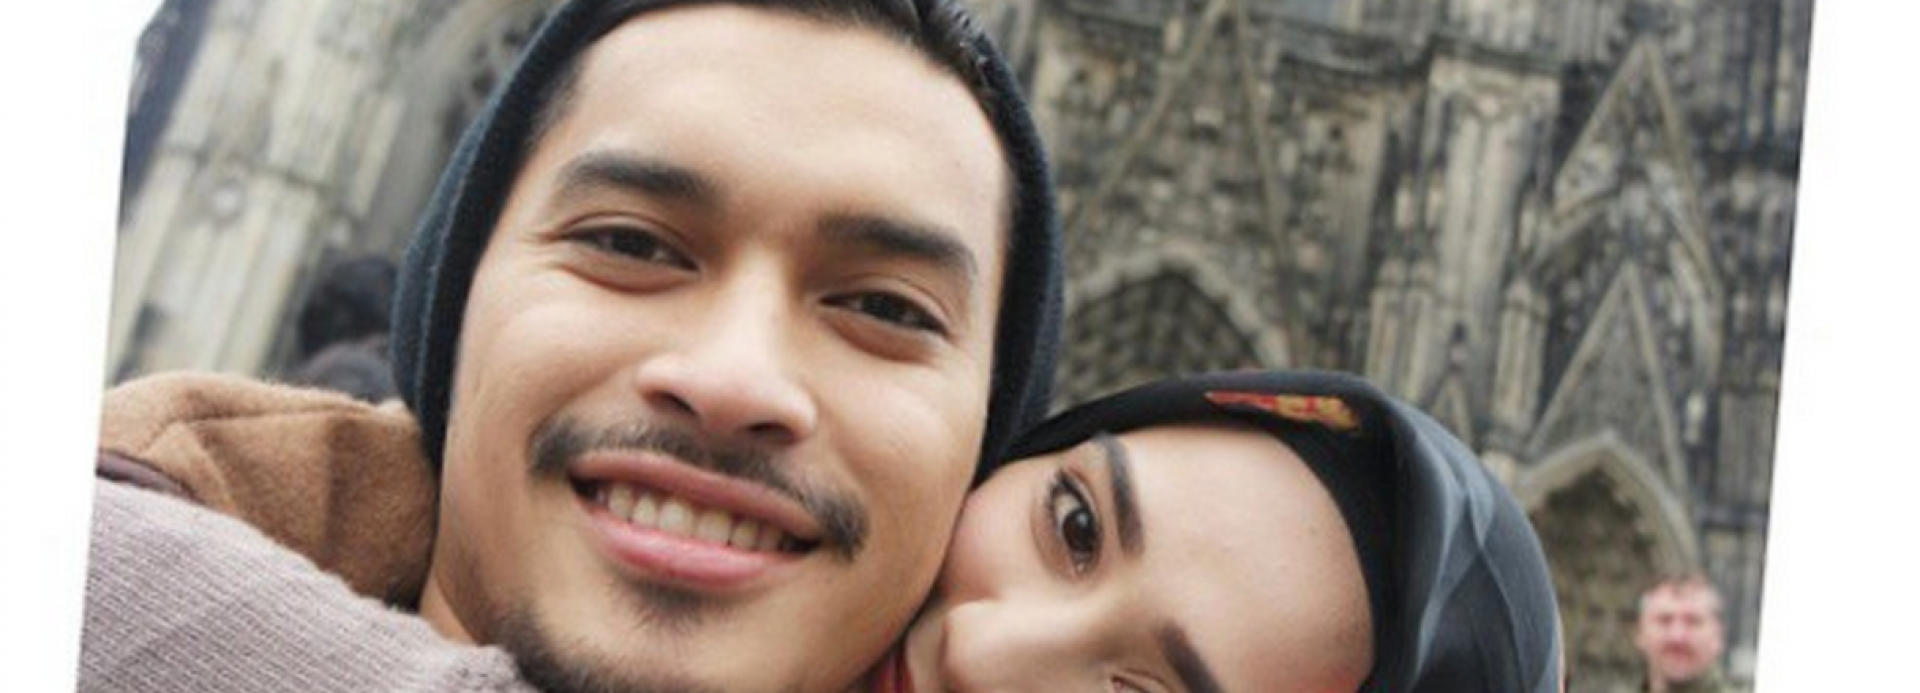 aeril-zafrel-wawa-twitter-honeymoon